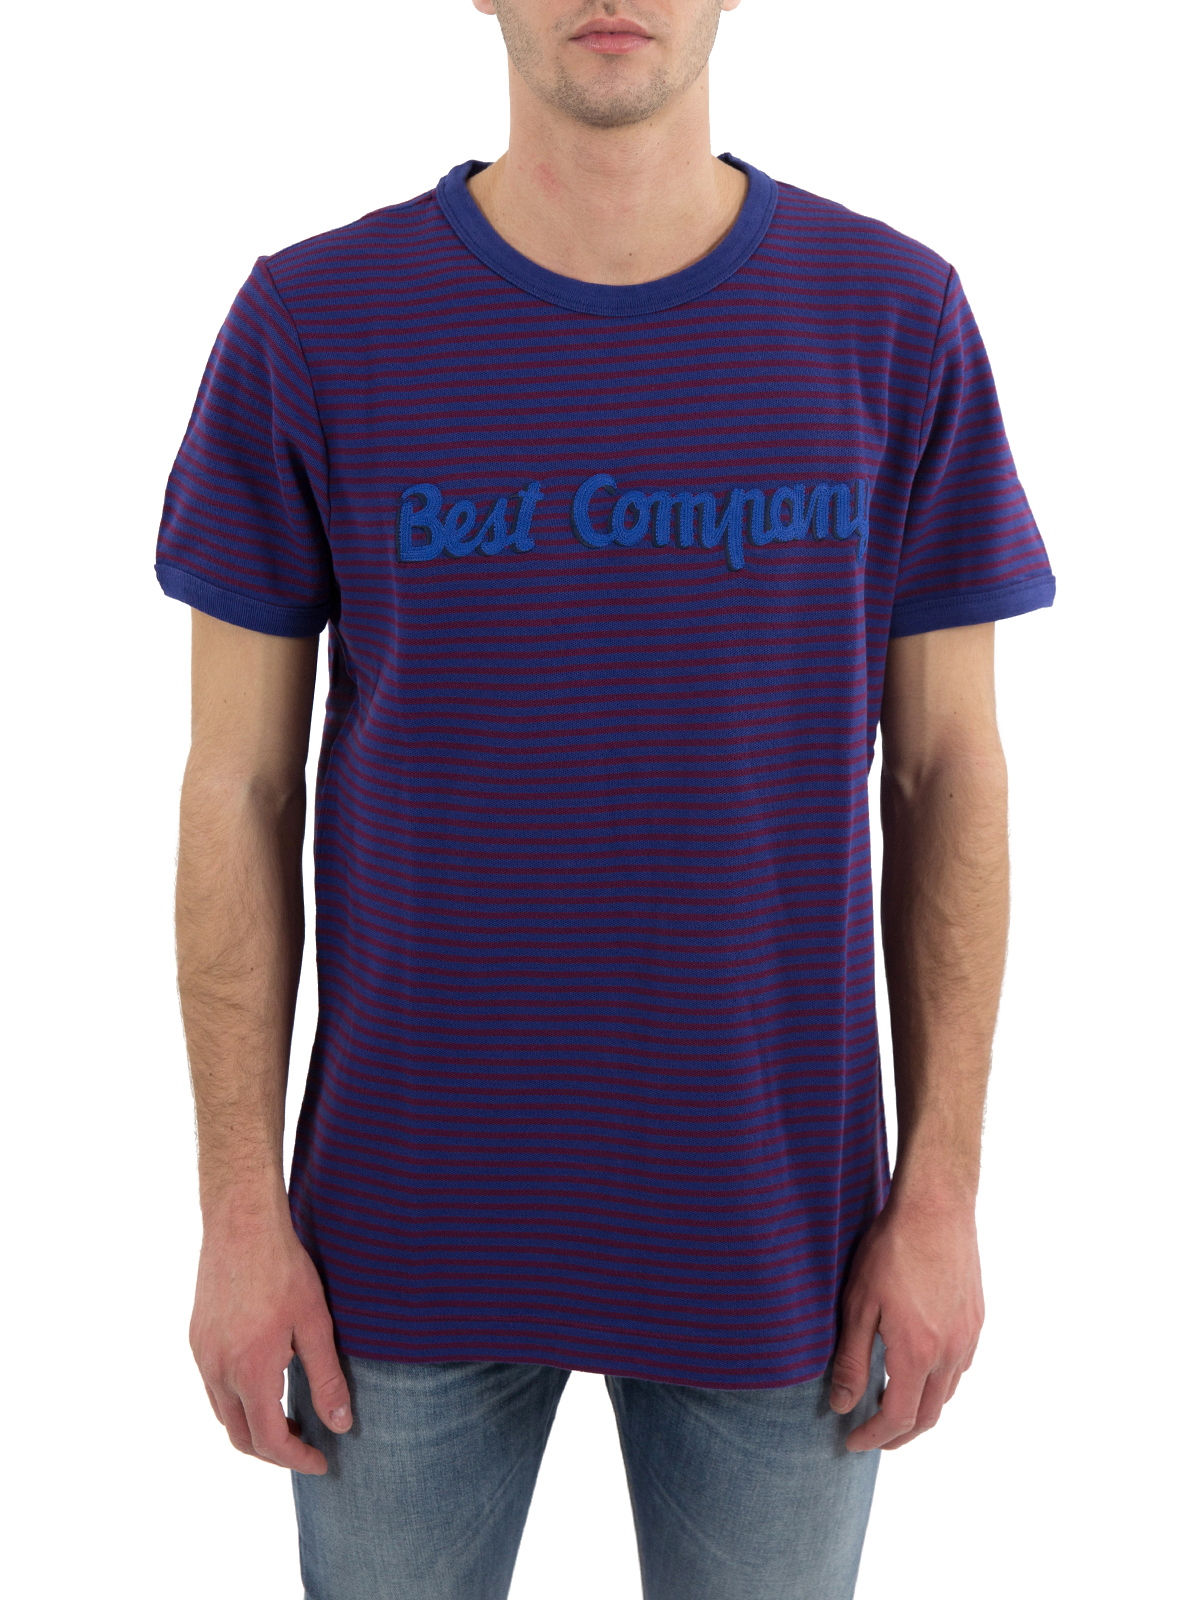 Best Company T-Shirt 692040